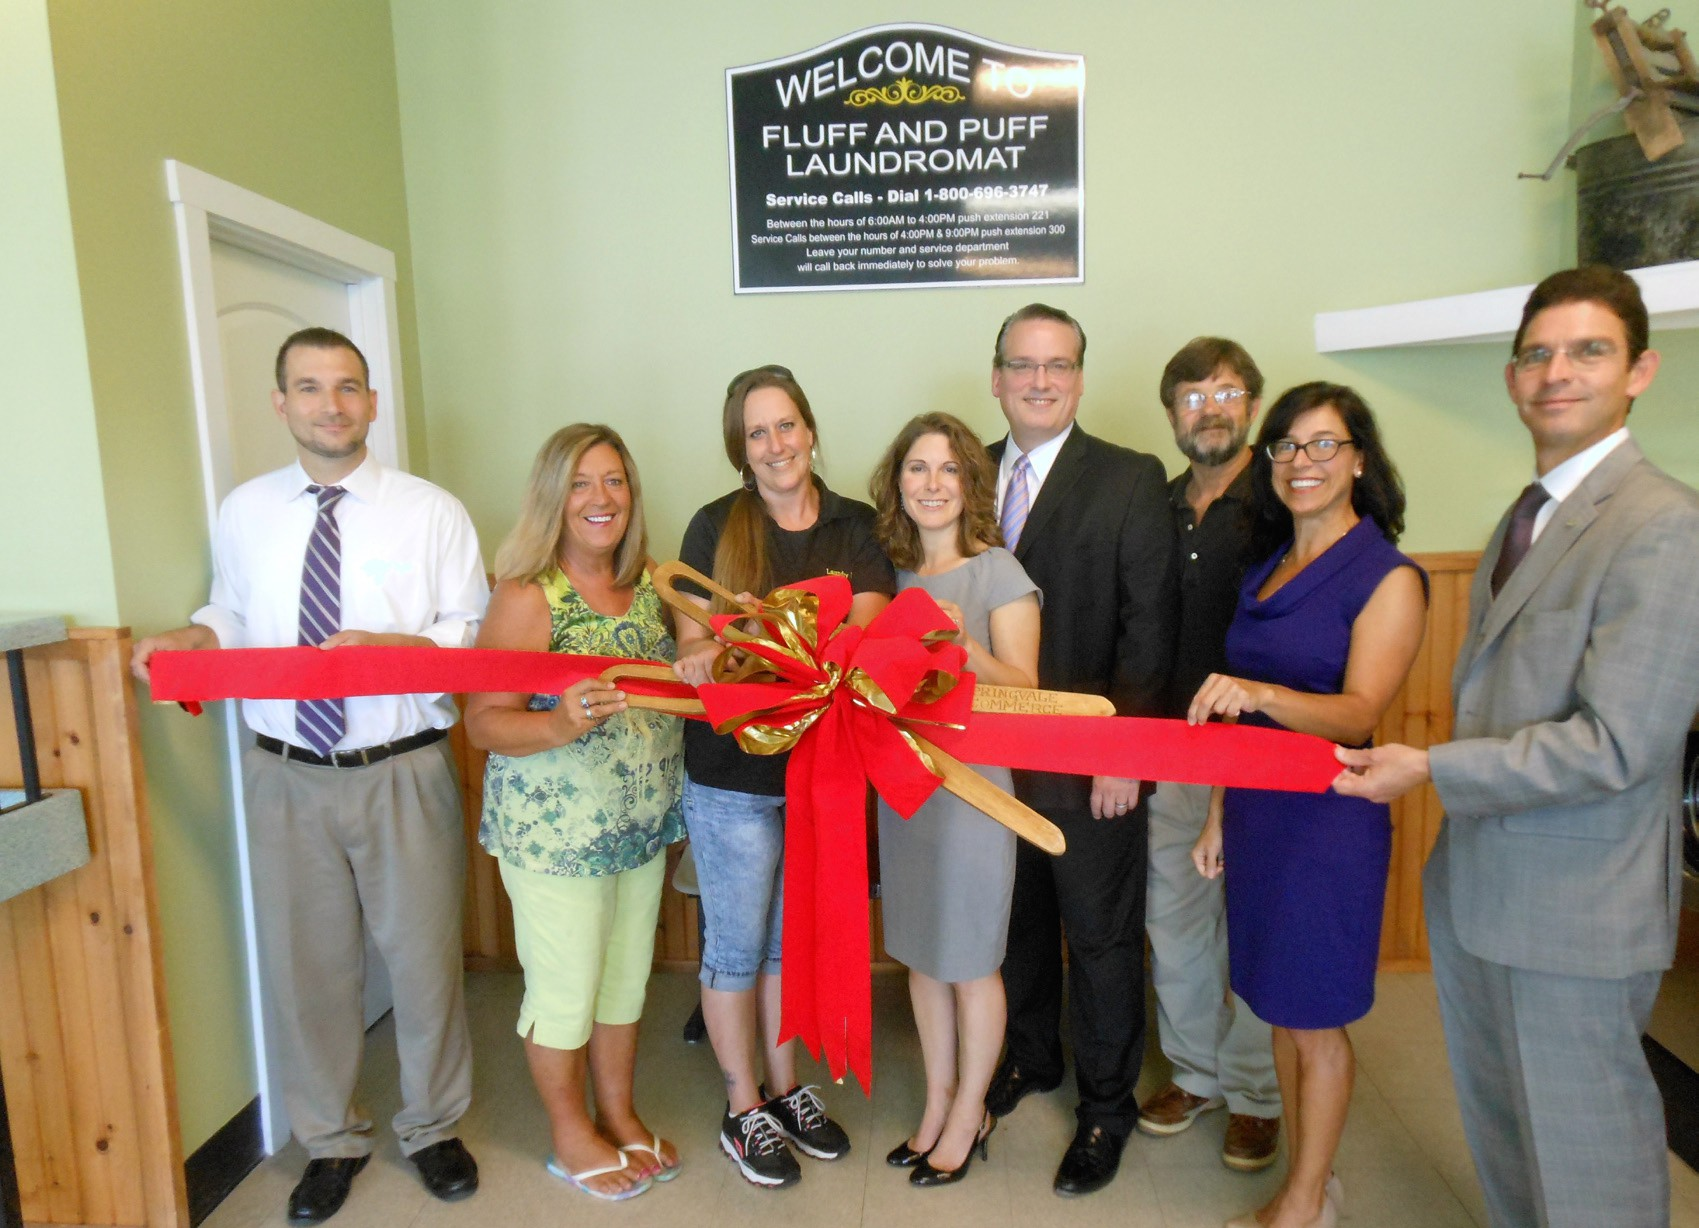 Cutting the ribbon for Fluff-N-Puff Laundry are, from left: Eric Gabois, SIS; Caren Martineau, Bachelder Brothers Insurance; Debbie True, manager of Fluff-N-Puff; Michele Dubois, Ronel J. Dubois Agency; Shawn Babine, Kennebunk Savings; Rick Stanley, Chamber president; Suzanne McKechnie, Investcomm Commercial Group; and Sean Dumont, Edward Jones Investments.